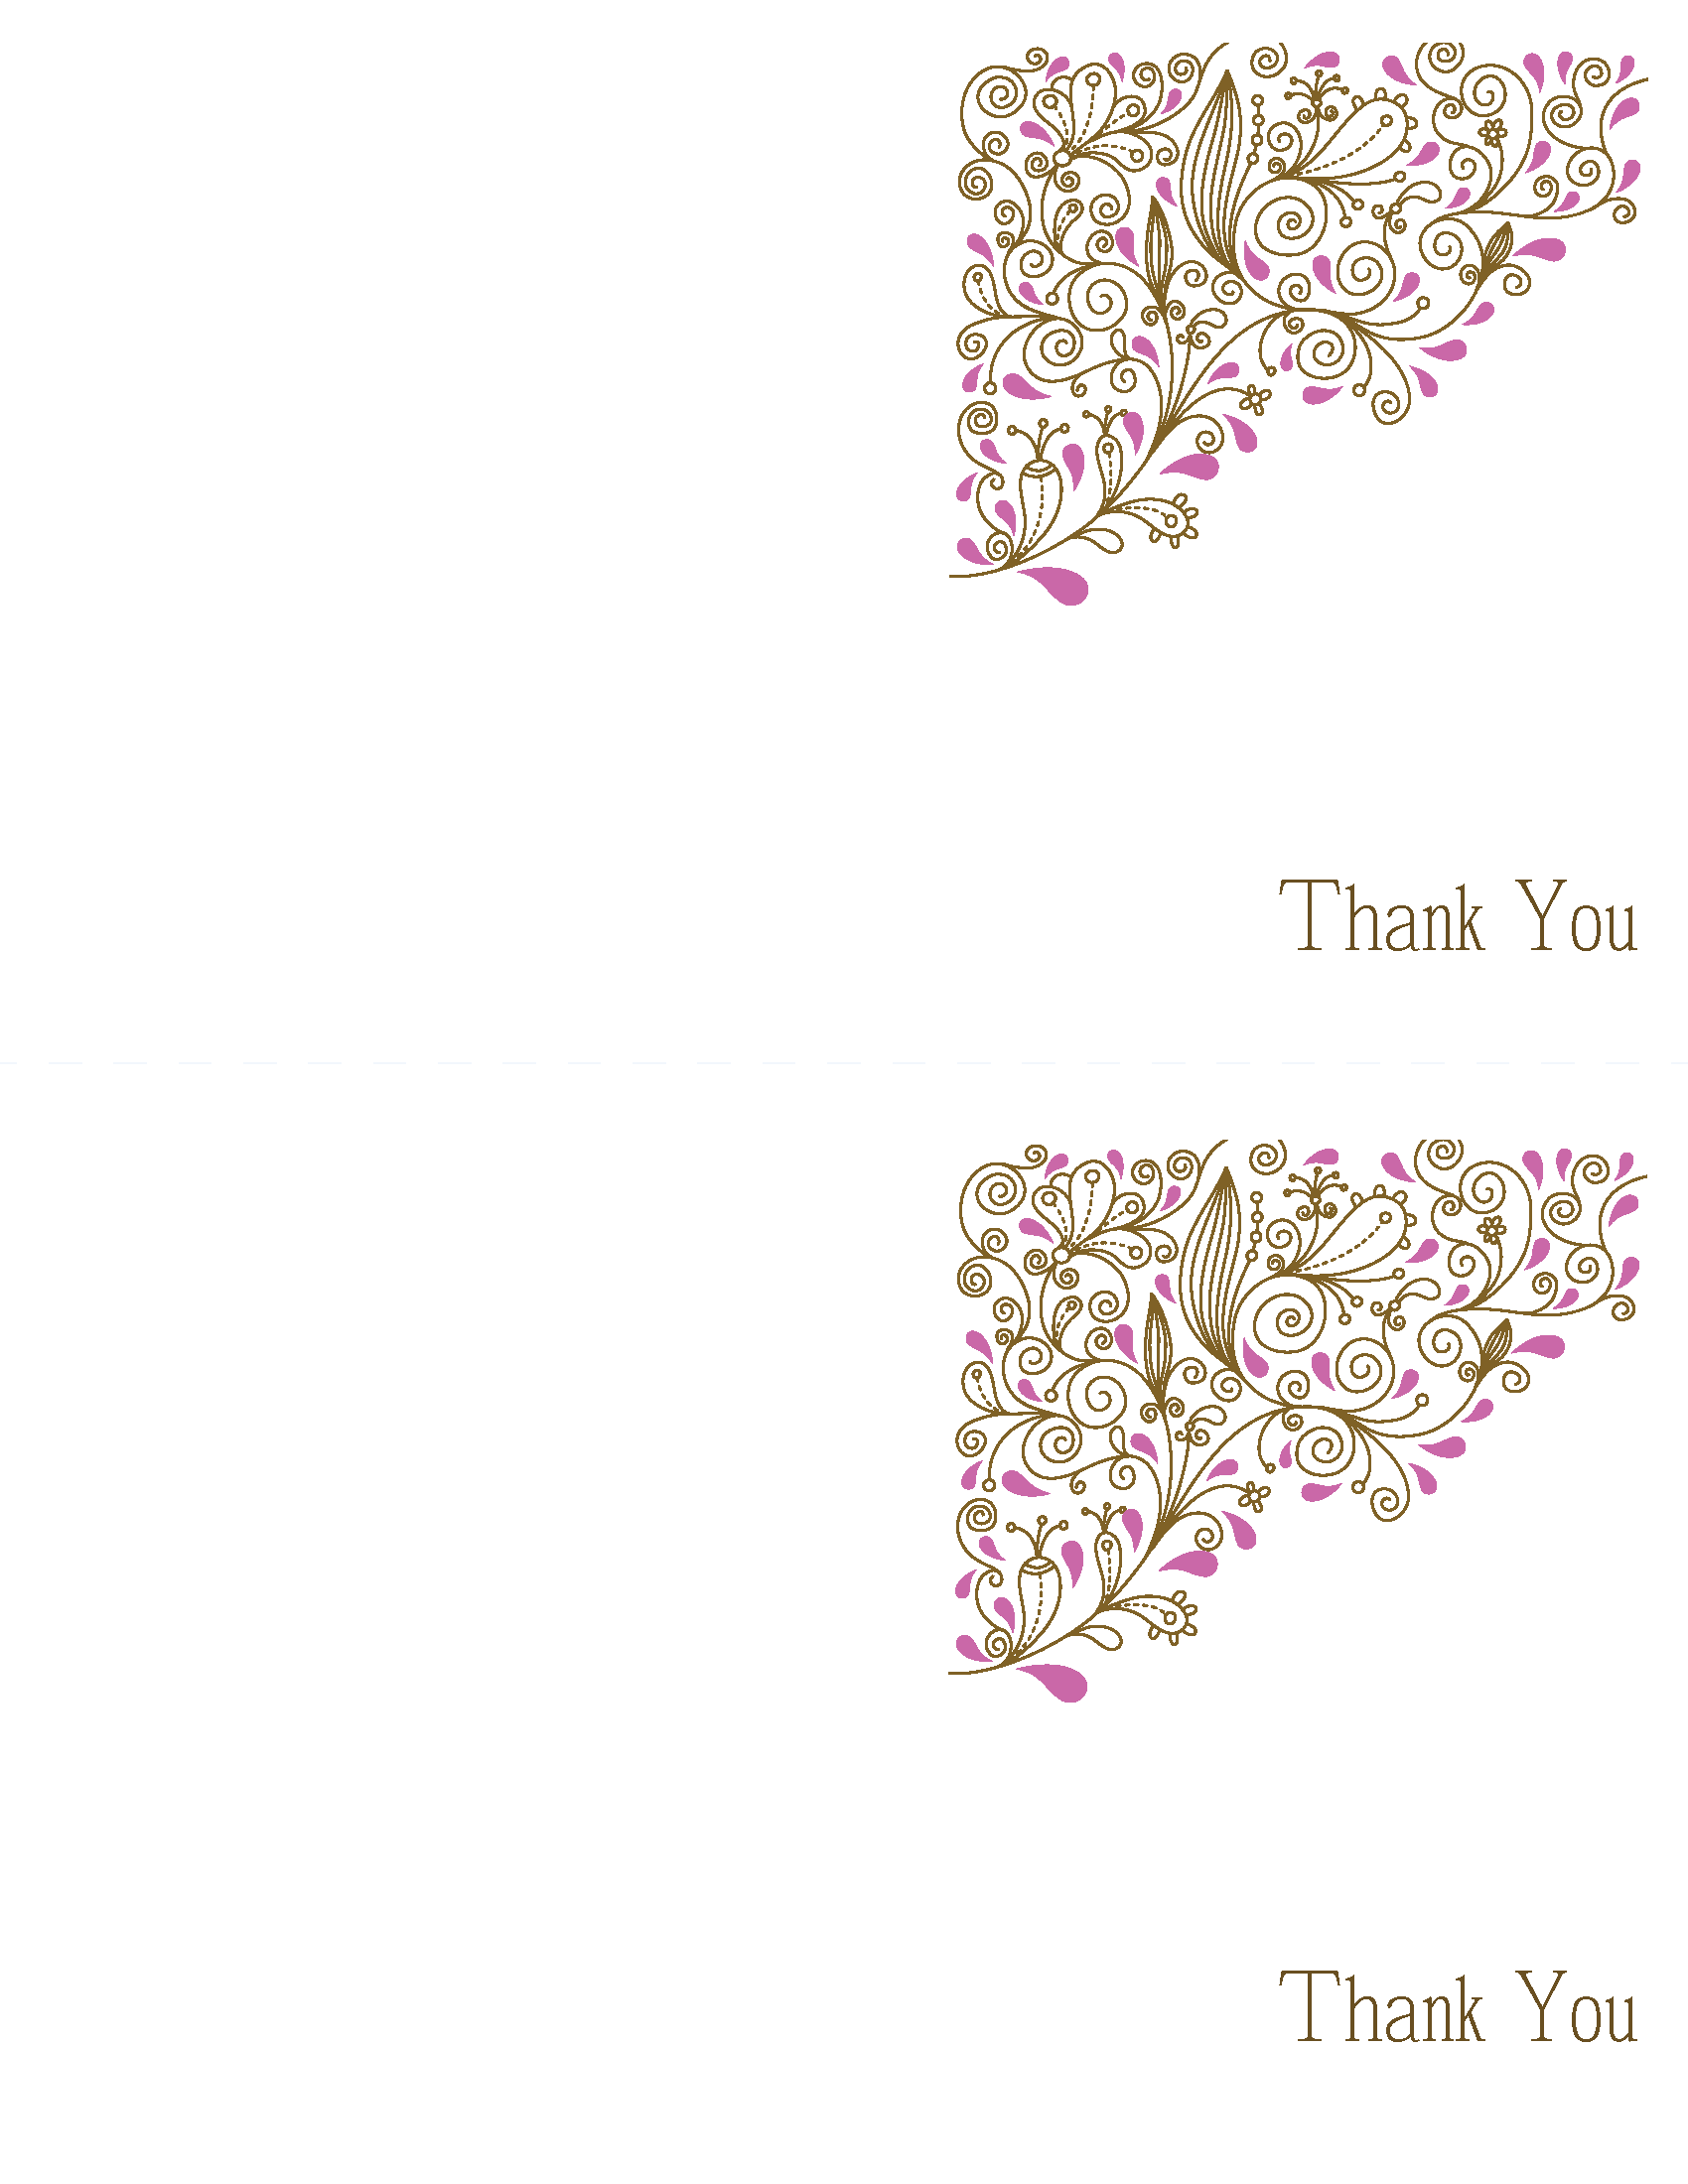 Thank you cards printable wedding invitations paisley ca diy thank you cards printable wedding invitations paisley candice suite pink and brown solutioingenieria Gallery